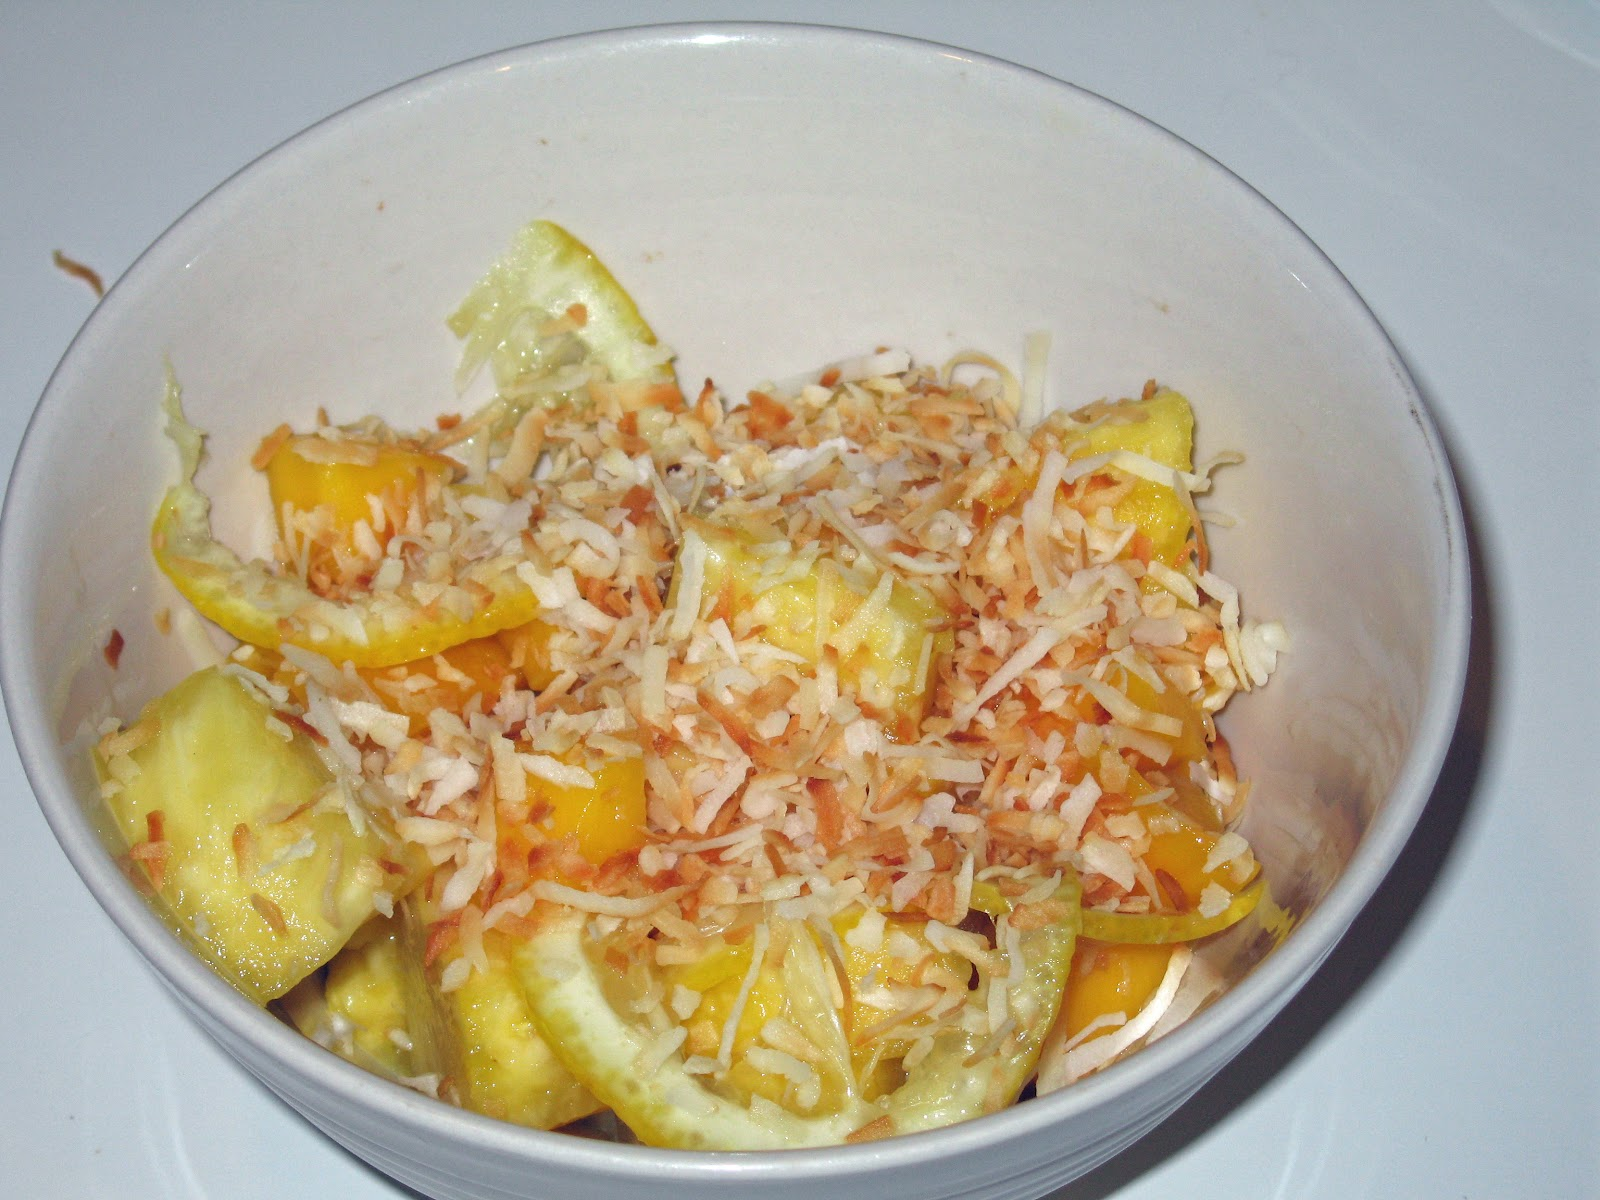 Put That in My Mouth: Pineapple, Mango, and Meyer Lemon Salad